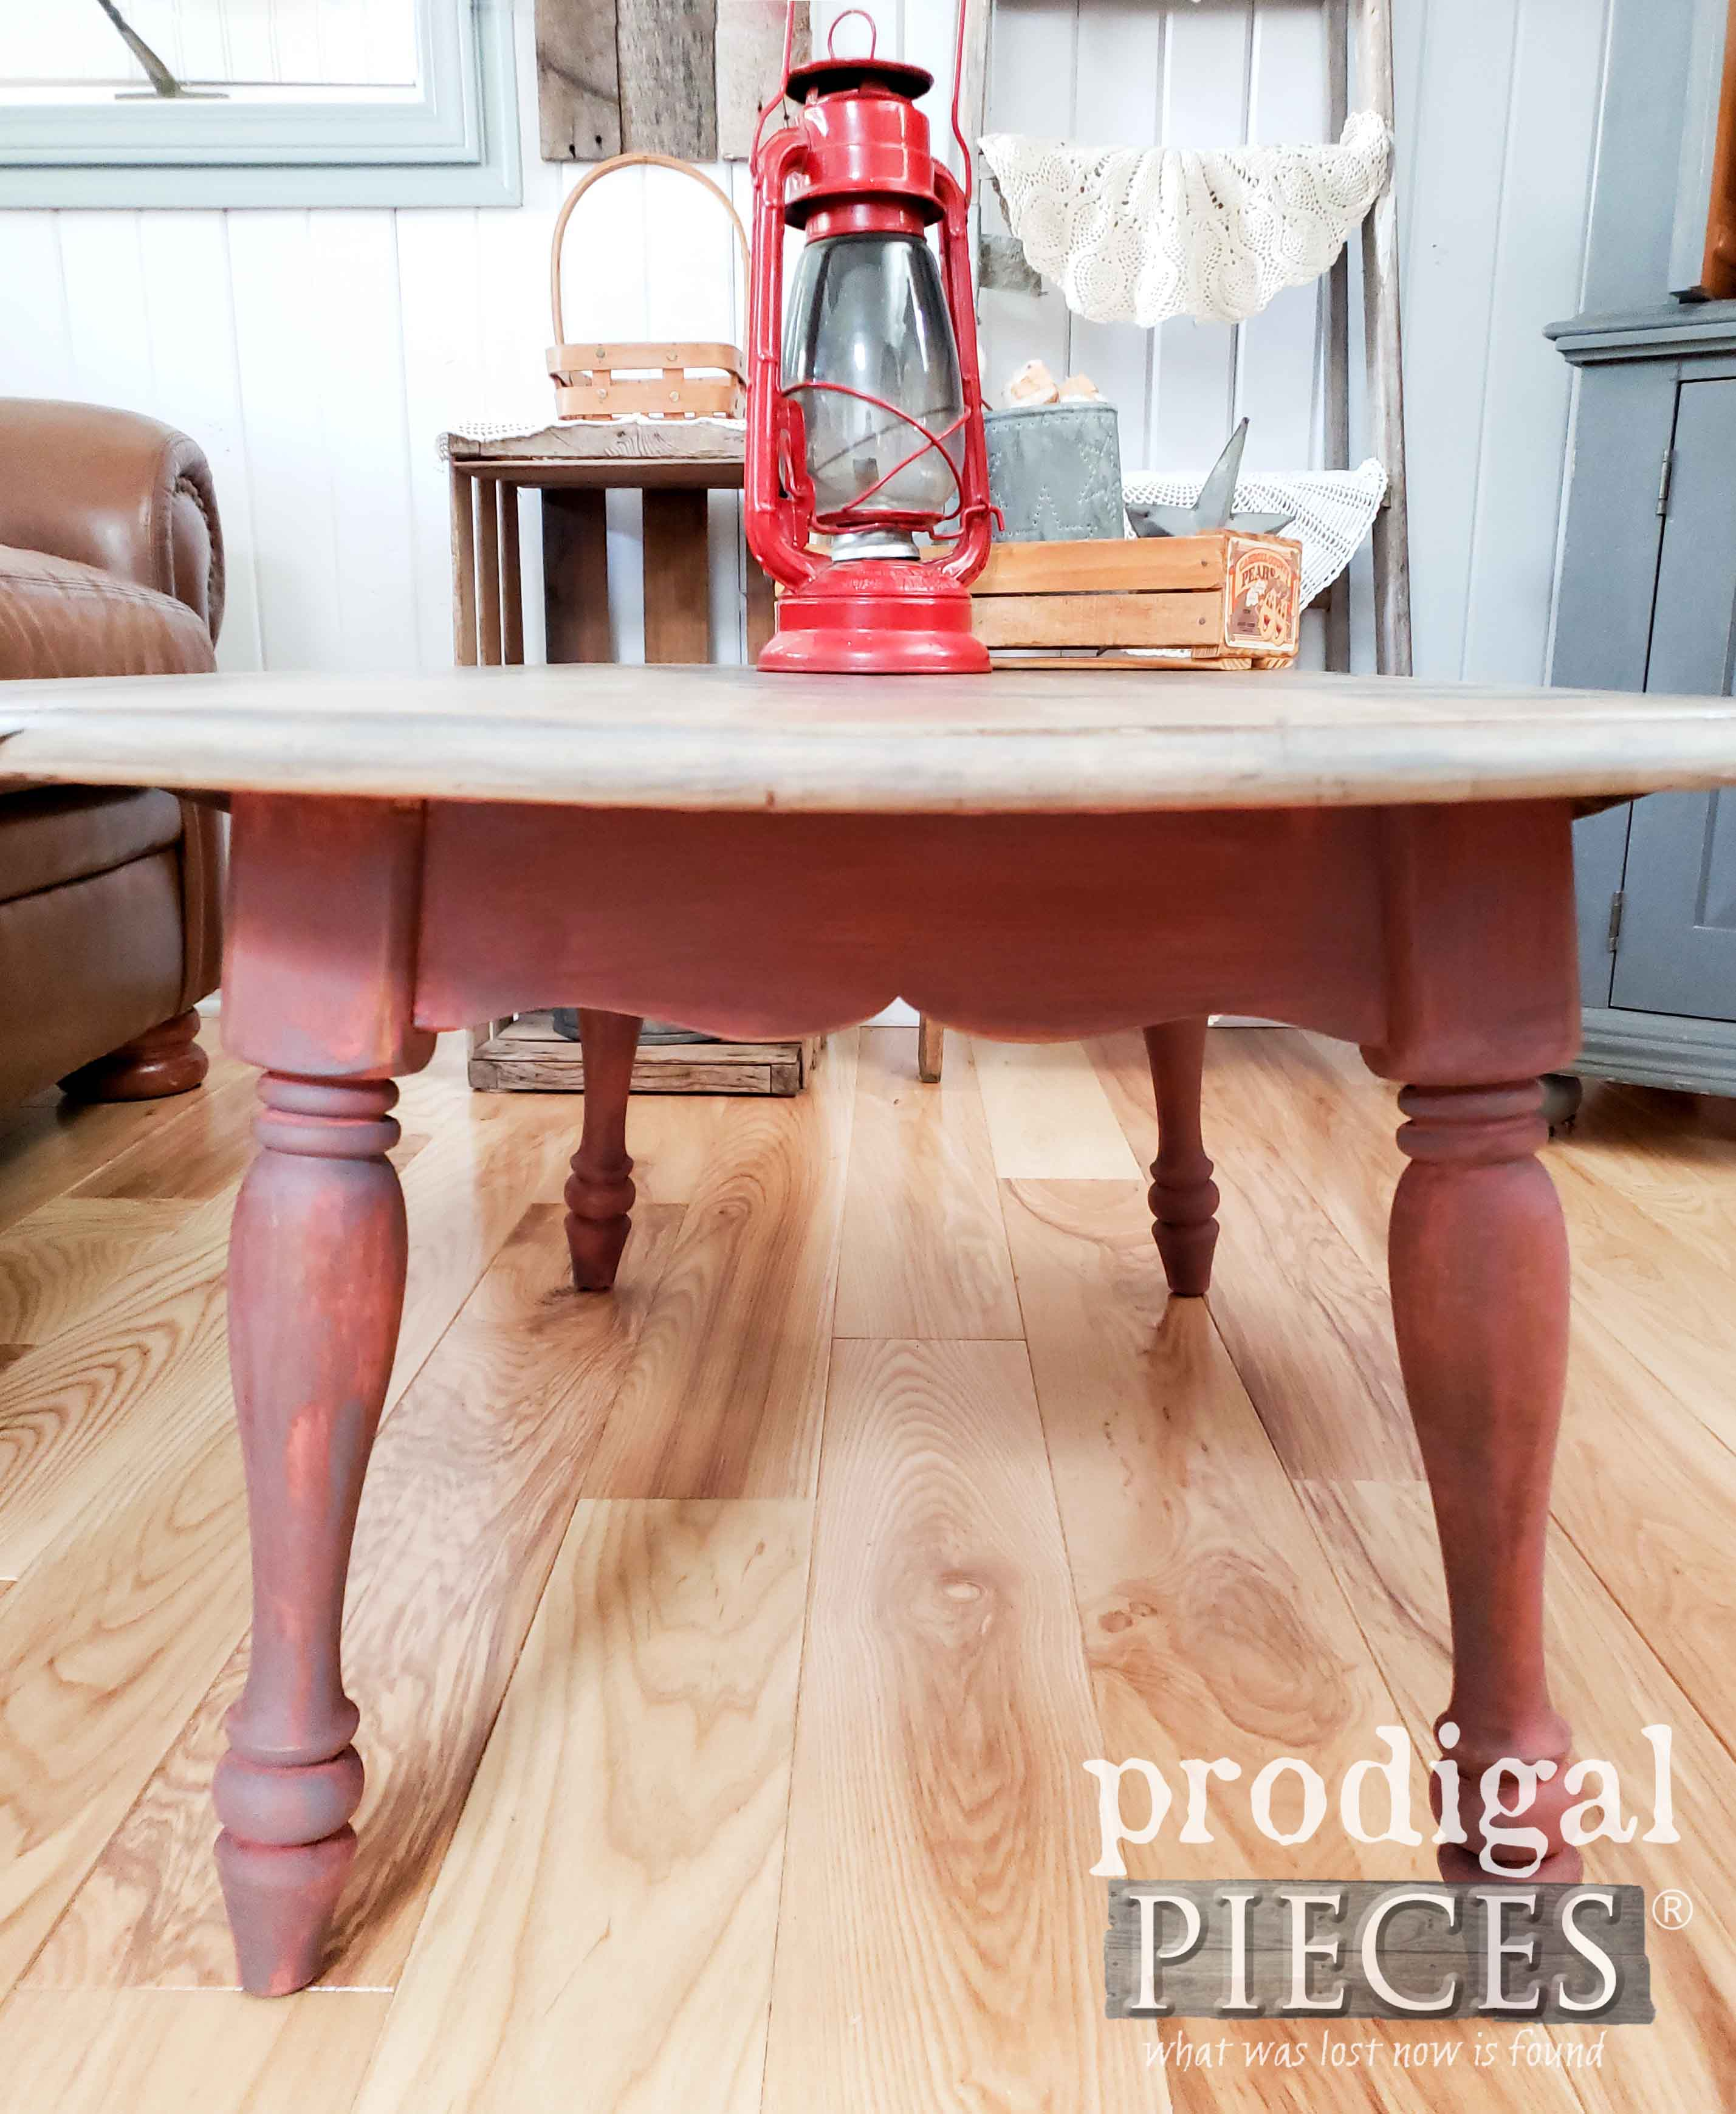 Milk-Painted Farmhouse Coffee Table by Larissa of Prodigal Pieces | prodigalpieces.com #prodigalpieces #home #furniture #farmhouse #diy #home #homedecor